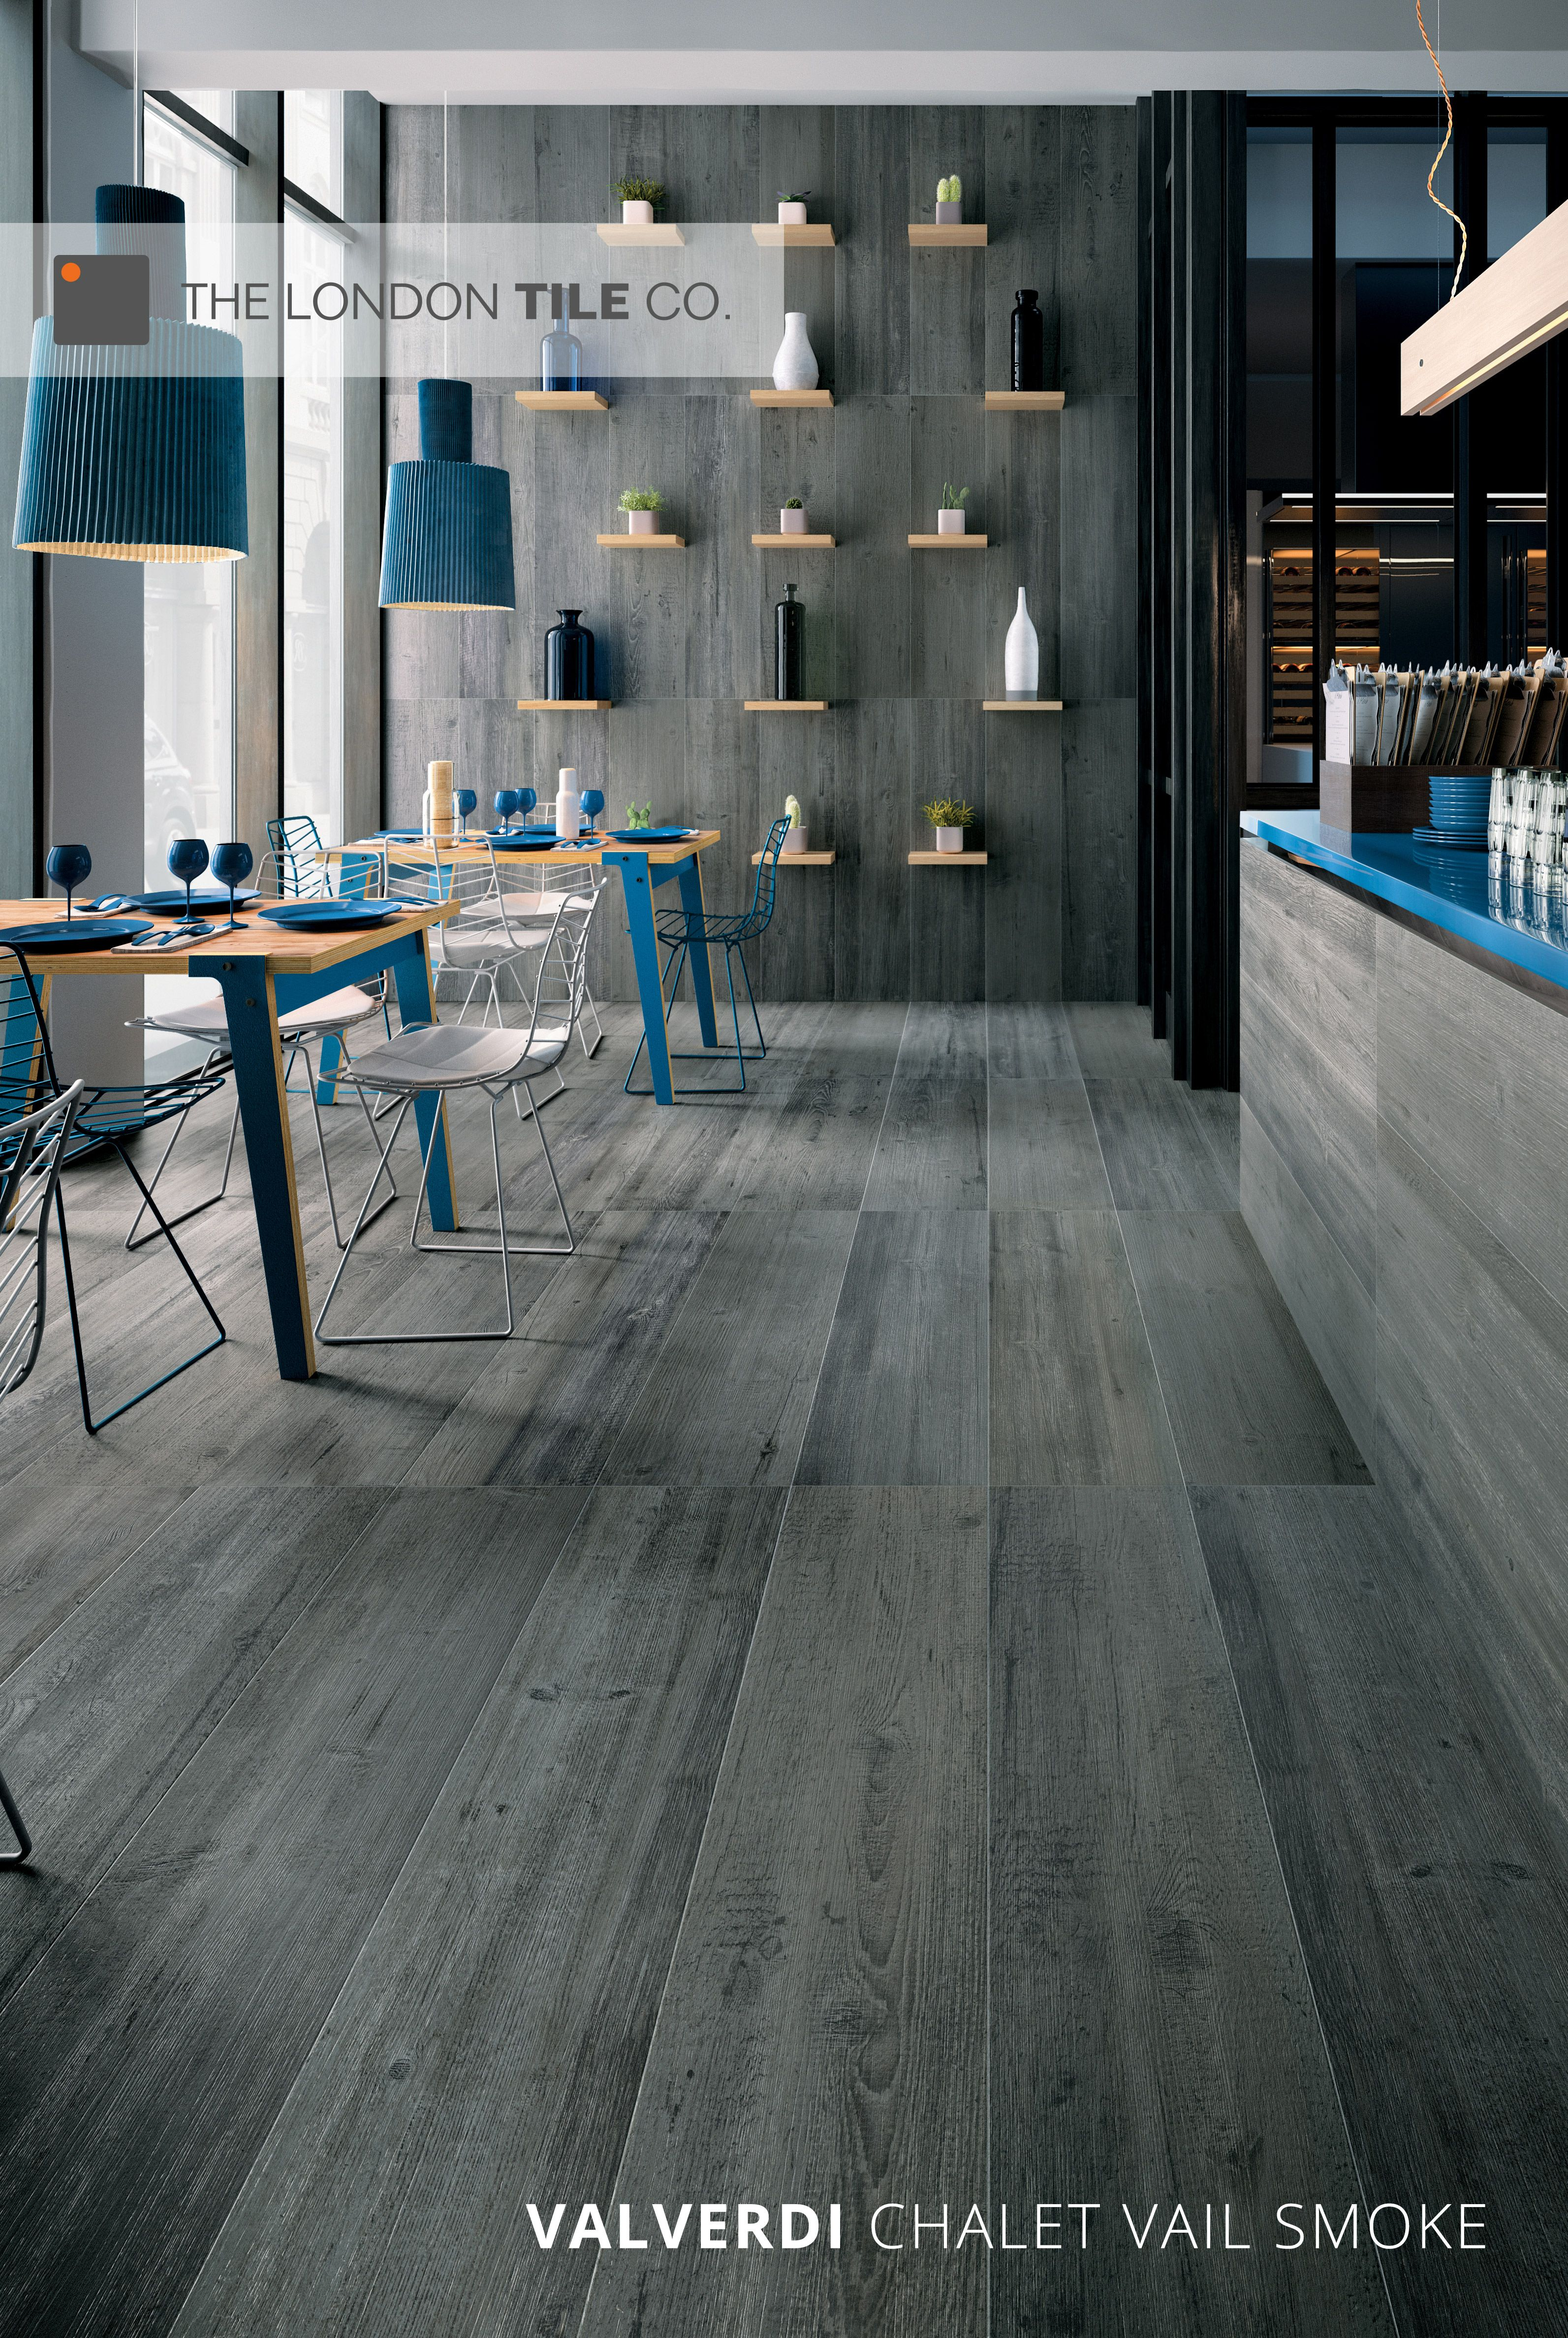 Valverdi Chalet Vail Smoke Grey Wood Effect Tiles Add A